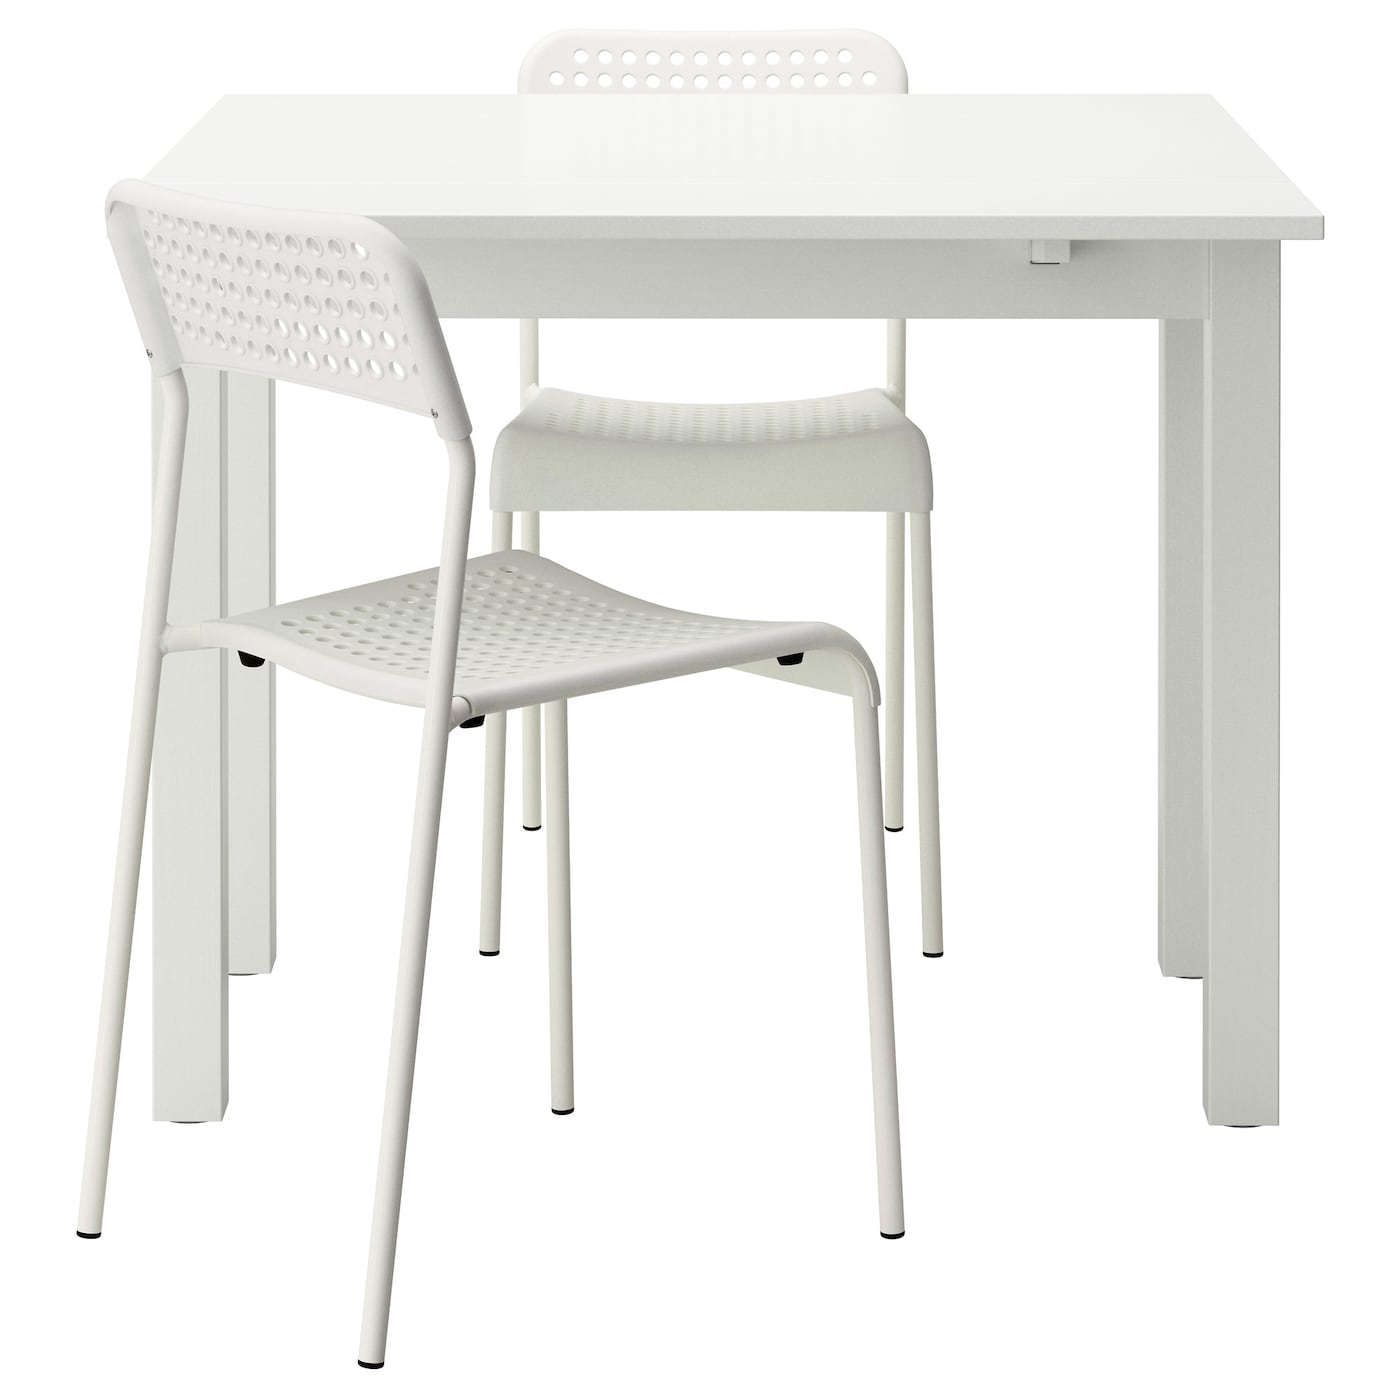 bjursta adde table and 2 chairs white 50 cm ikea. Black Bedroom Furniture Sets. Home Design Ideas